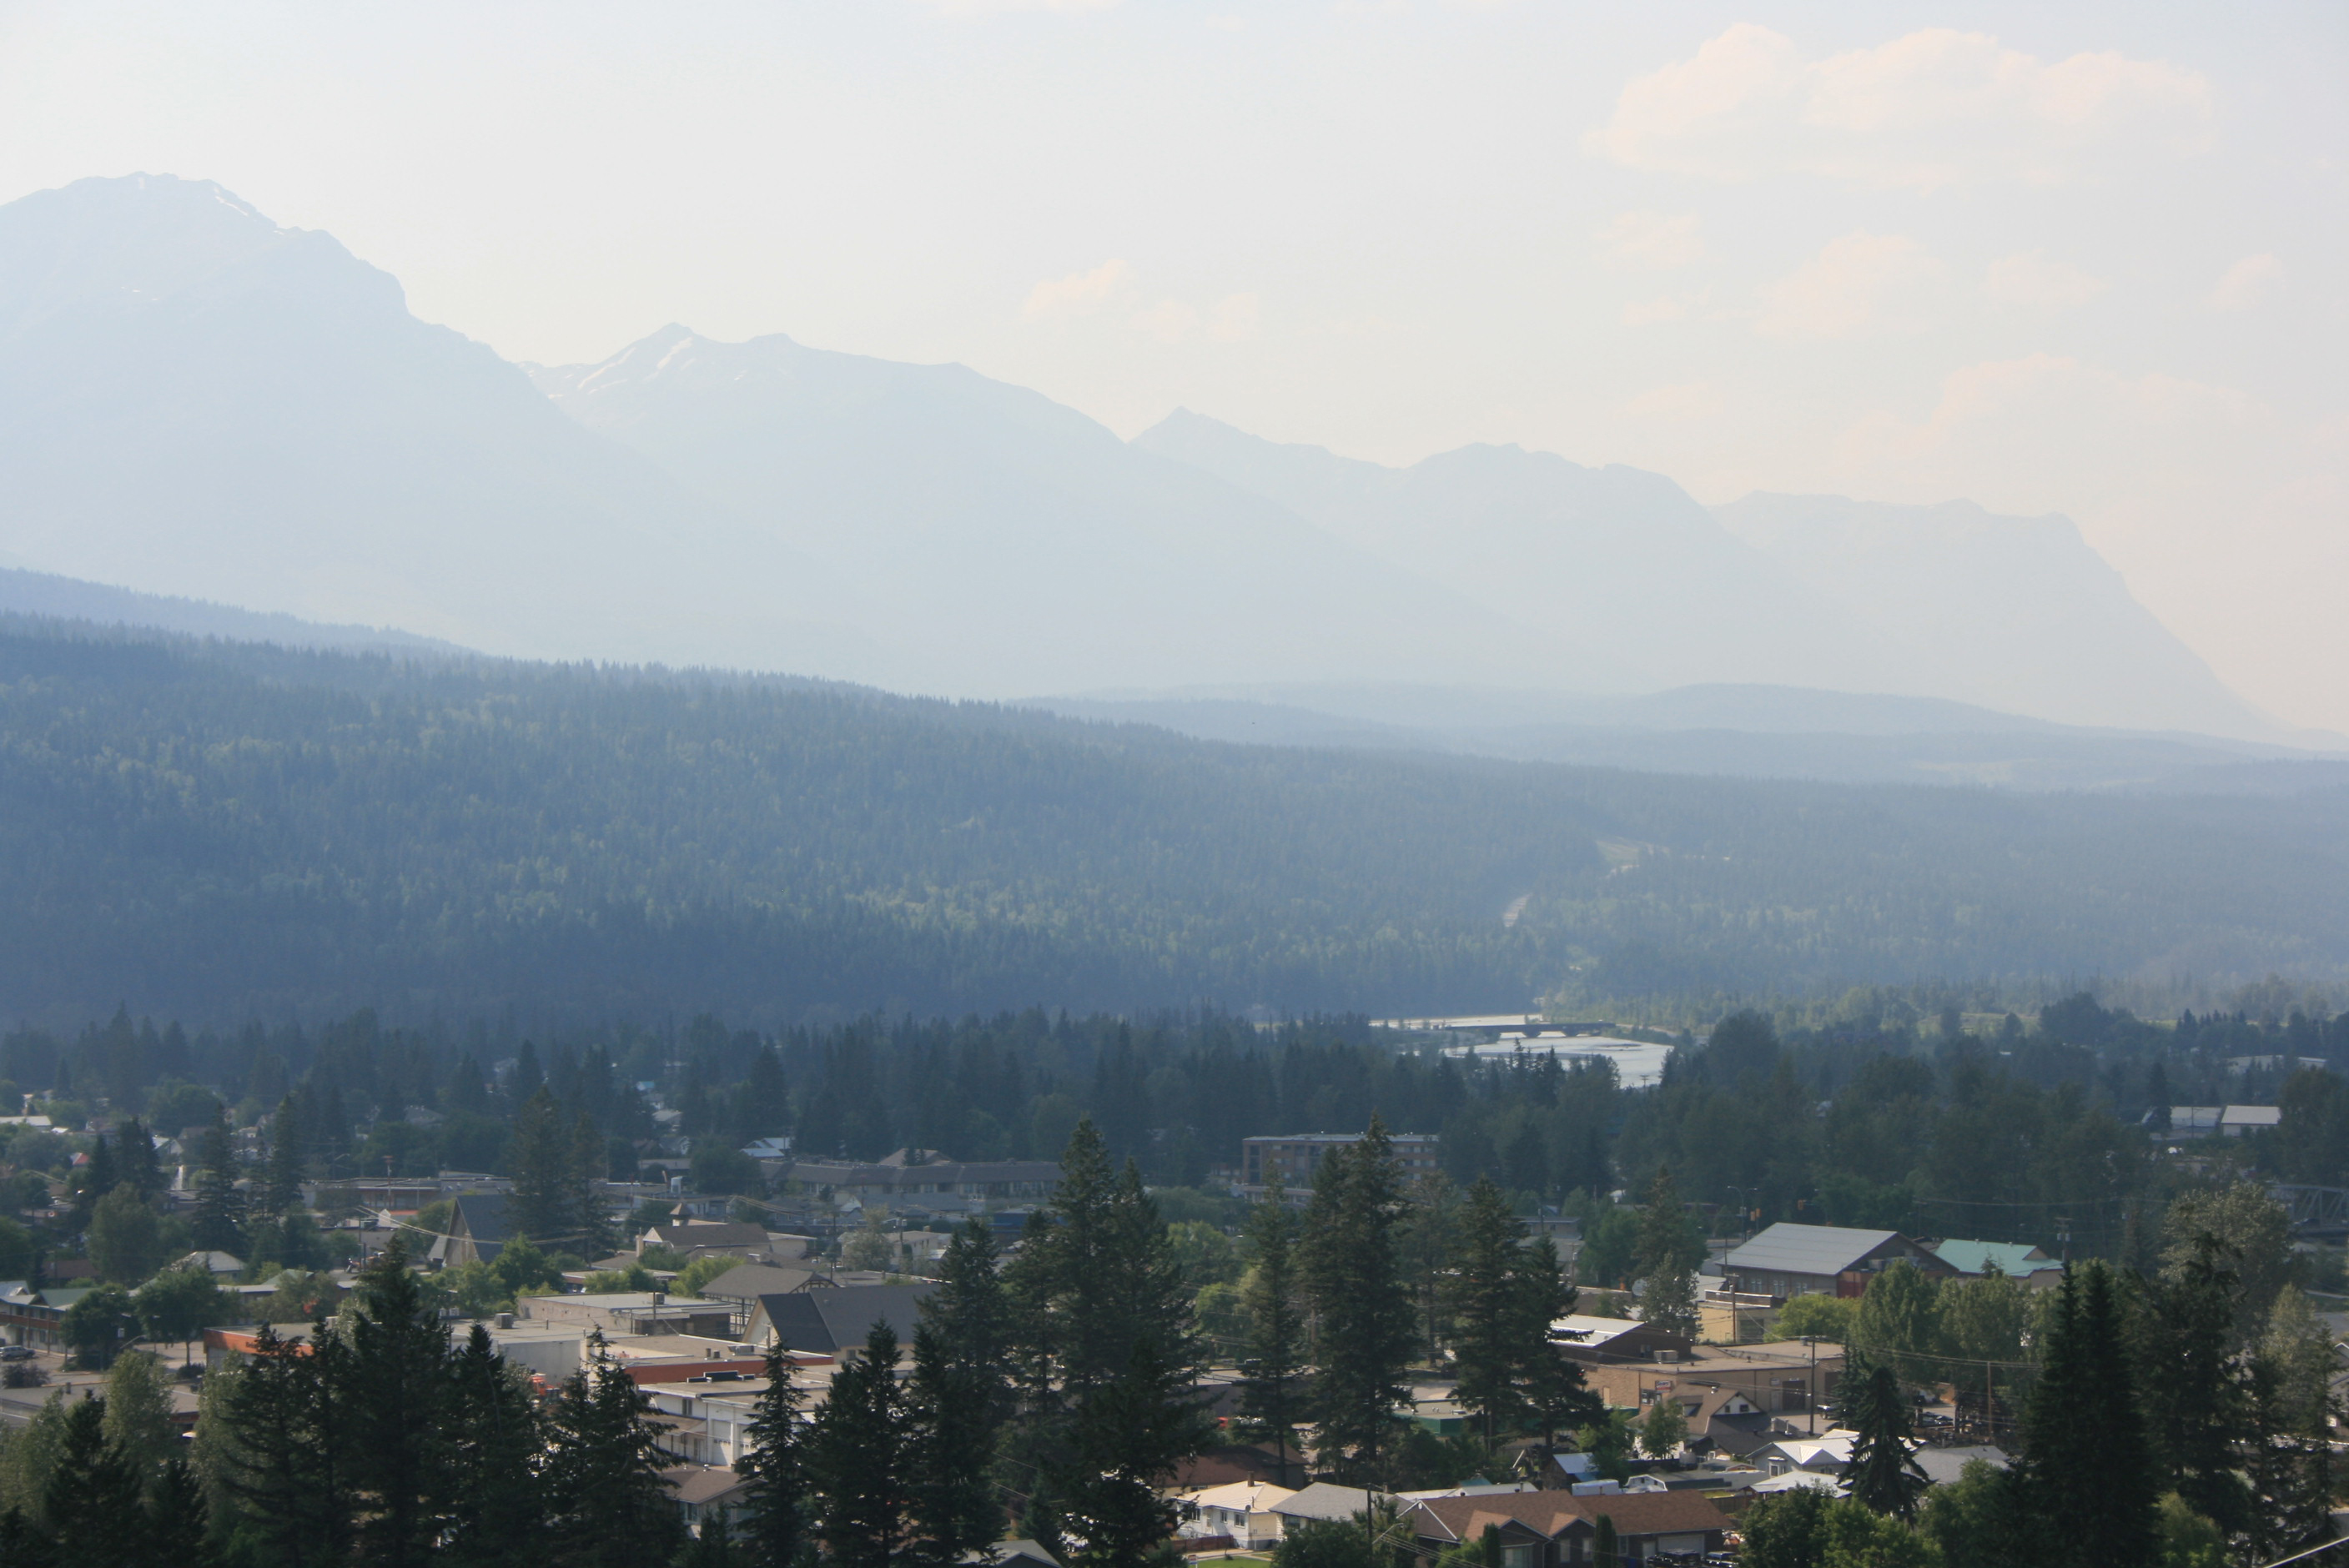 Wildfire Smoke Advisory Issued for Golden and Surrounding Areas